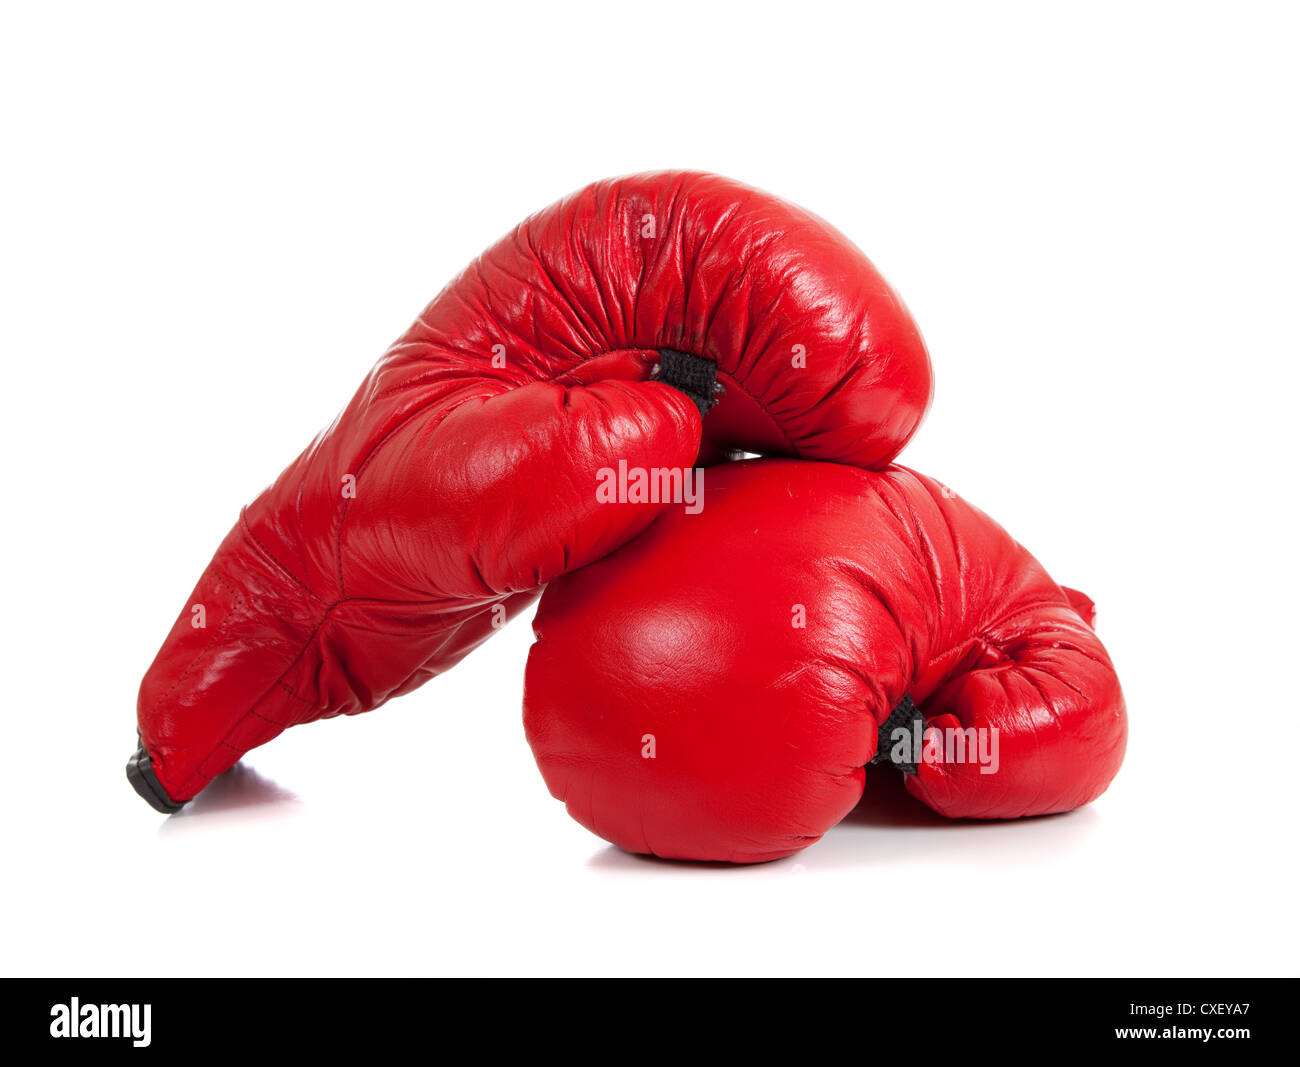 Red boxing gloves on a white background - Stock Image